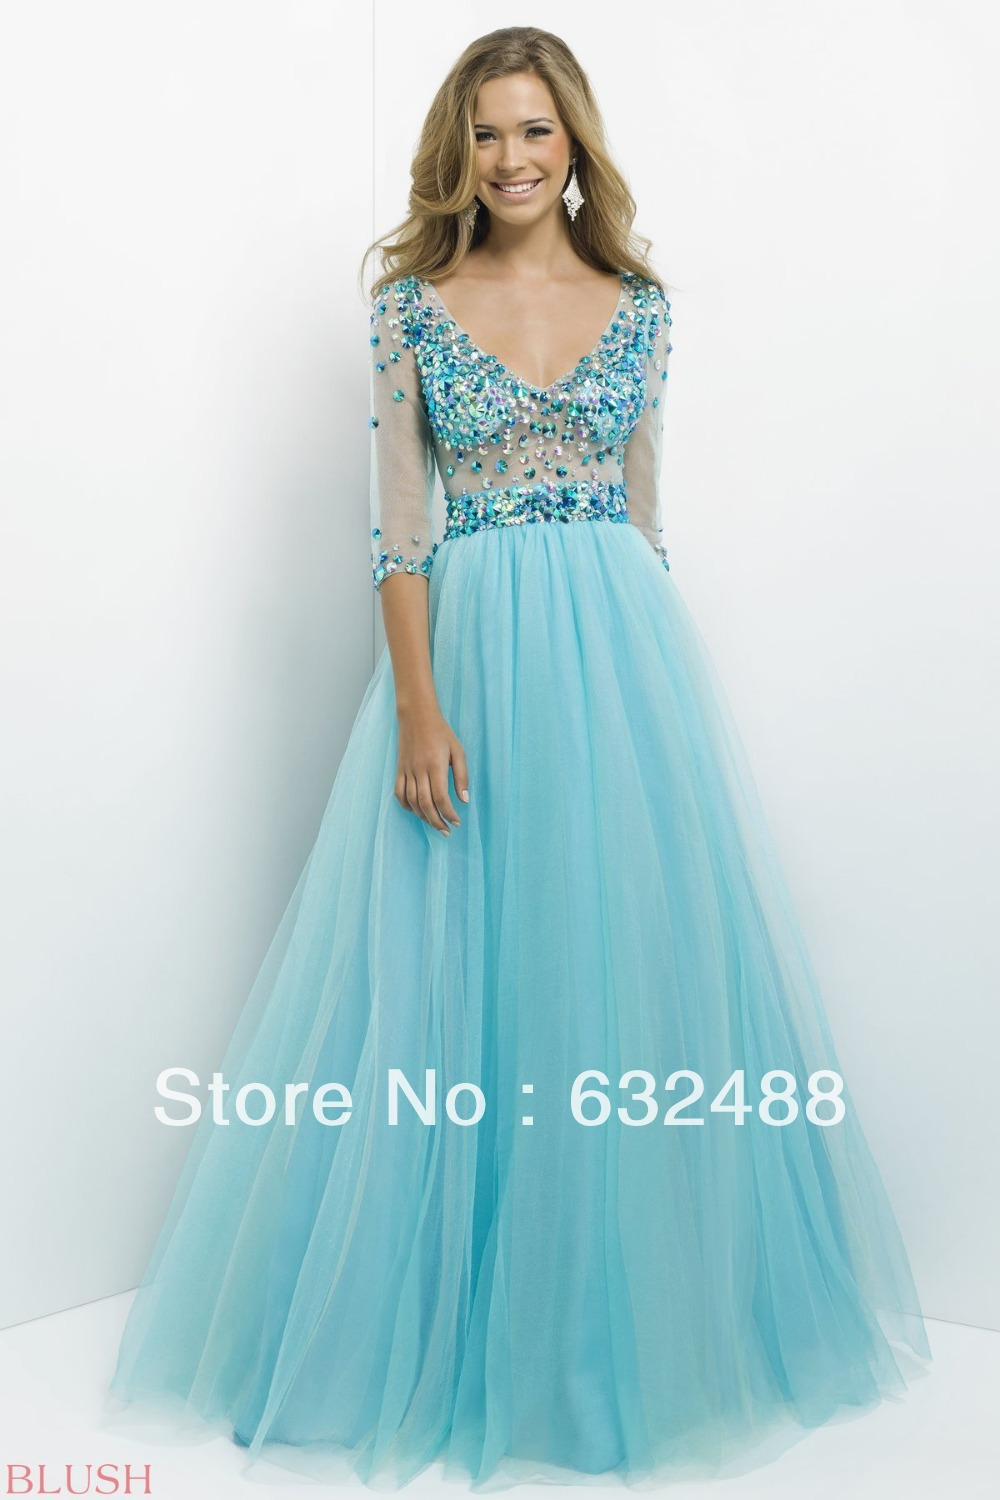 Places that buy back prom dresses